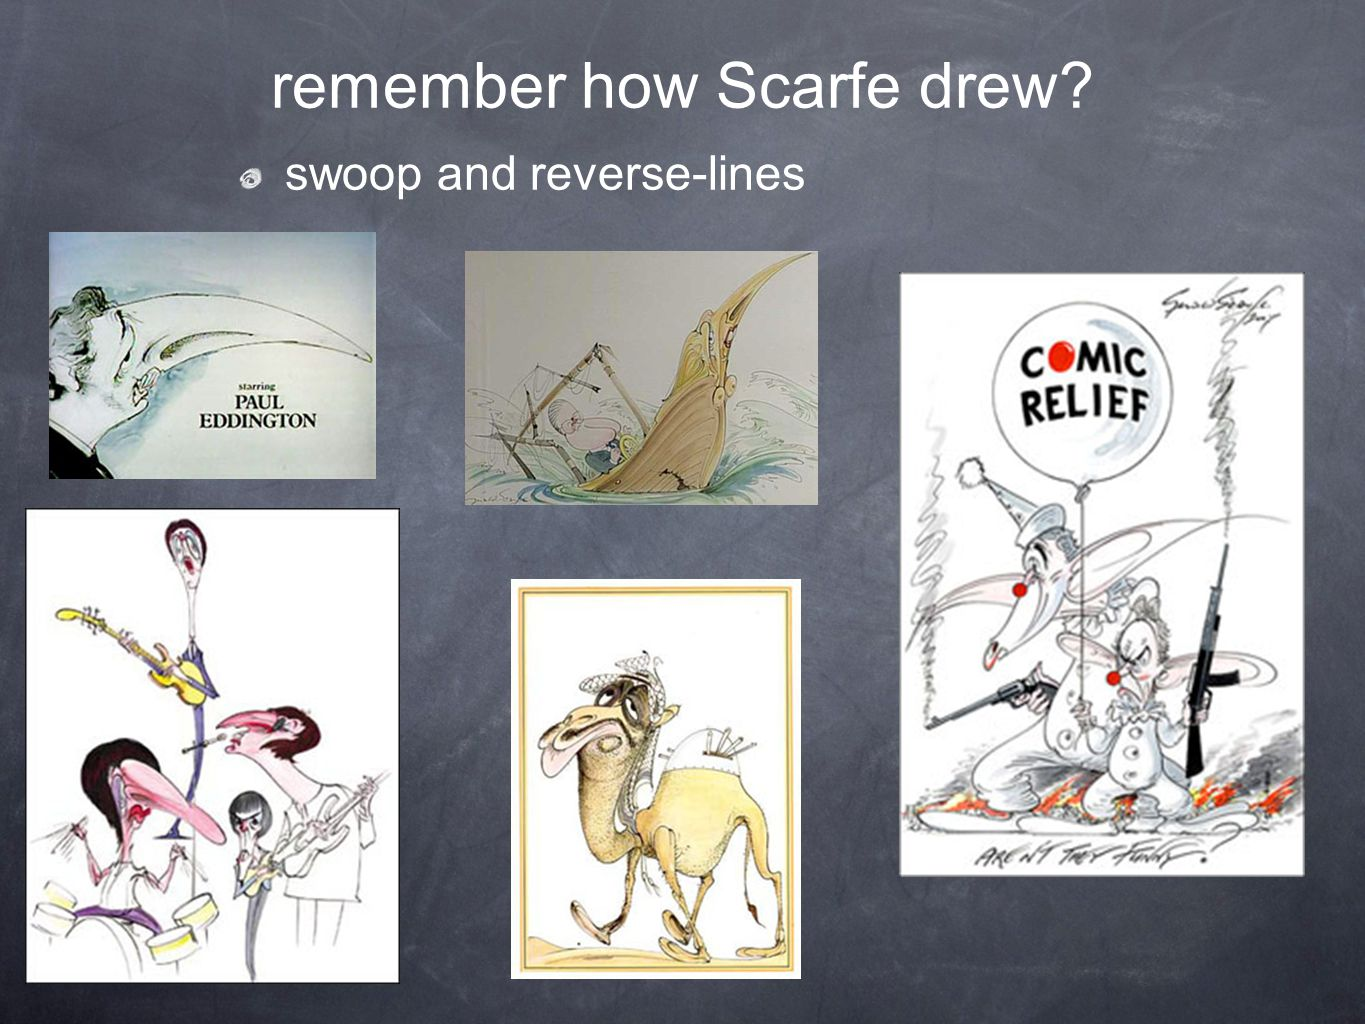 remember how Scarfe drew